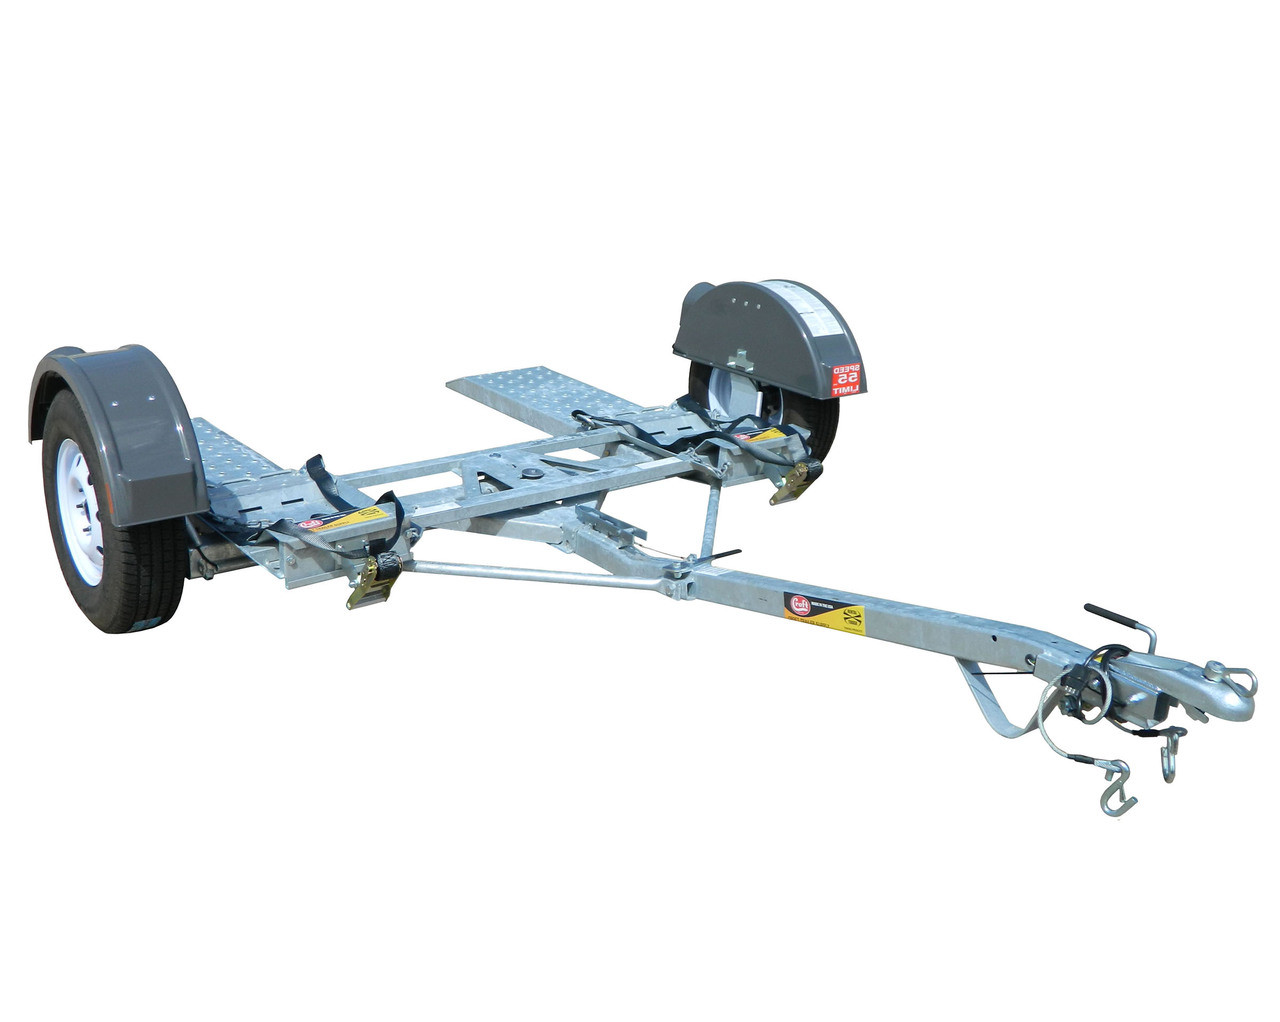 Cgtd76 Croft Torsion Axle Tow Dolly Gt400 Croft Trailer Supply